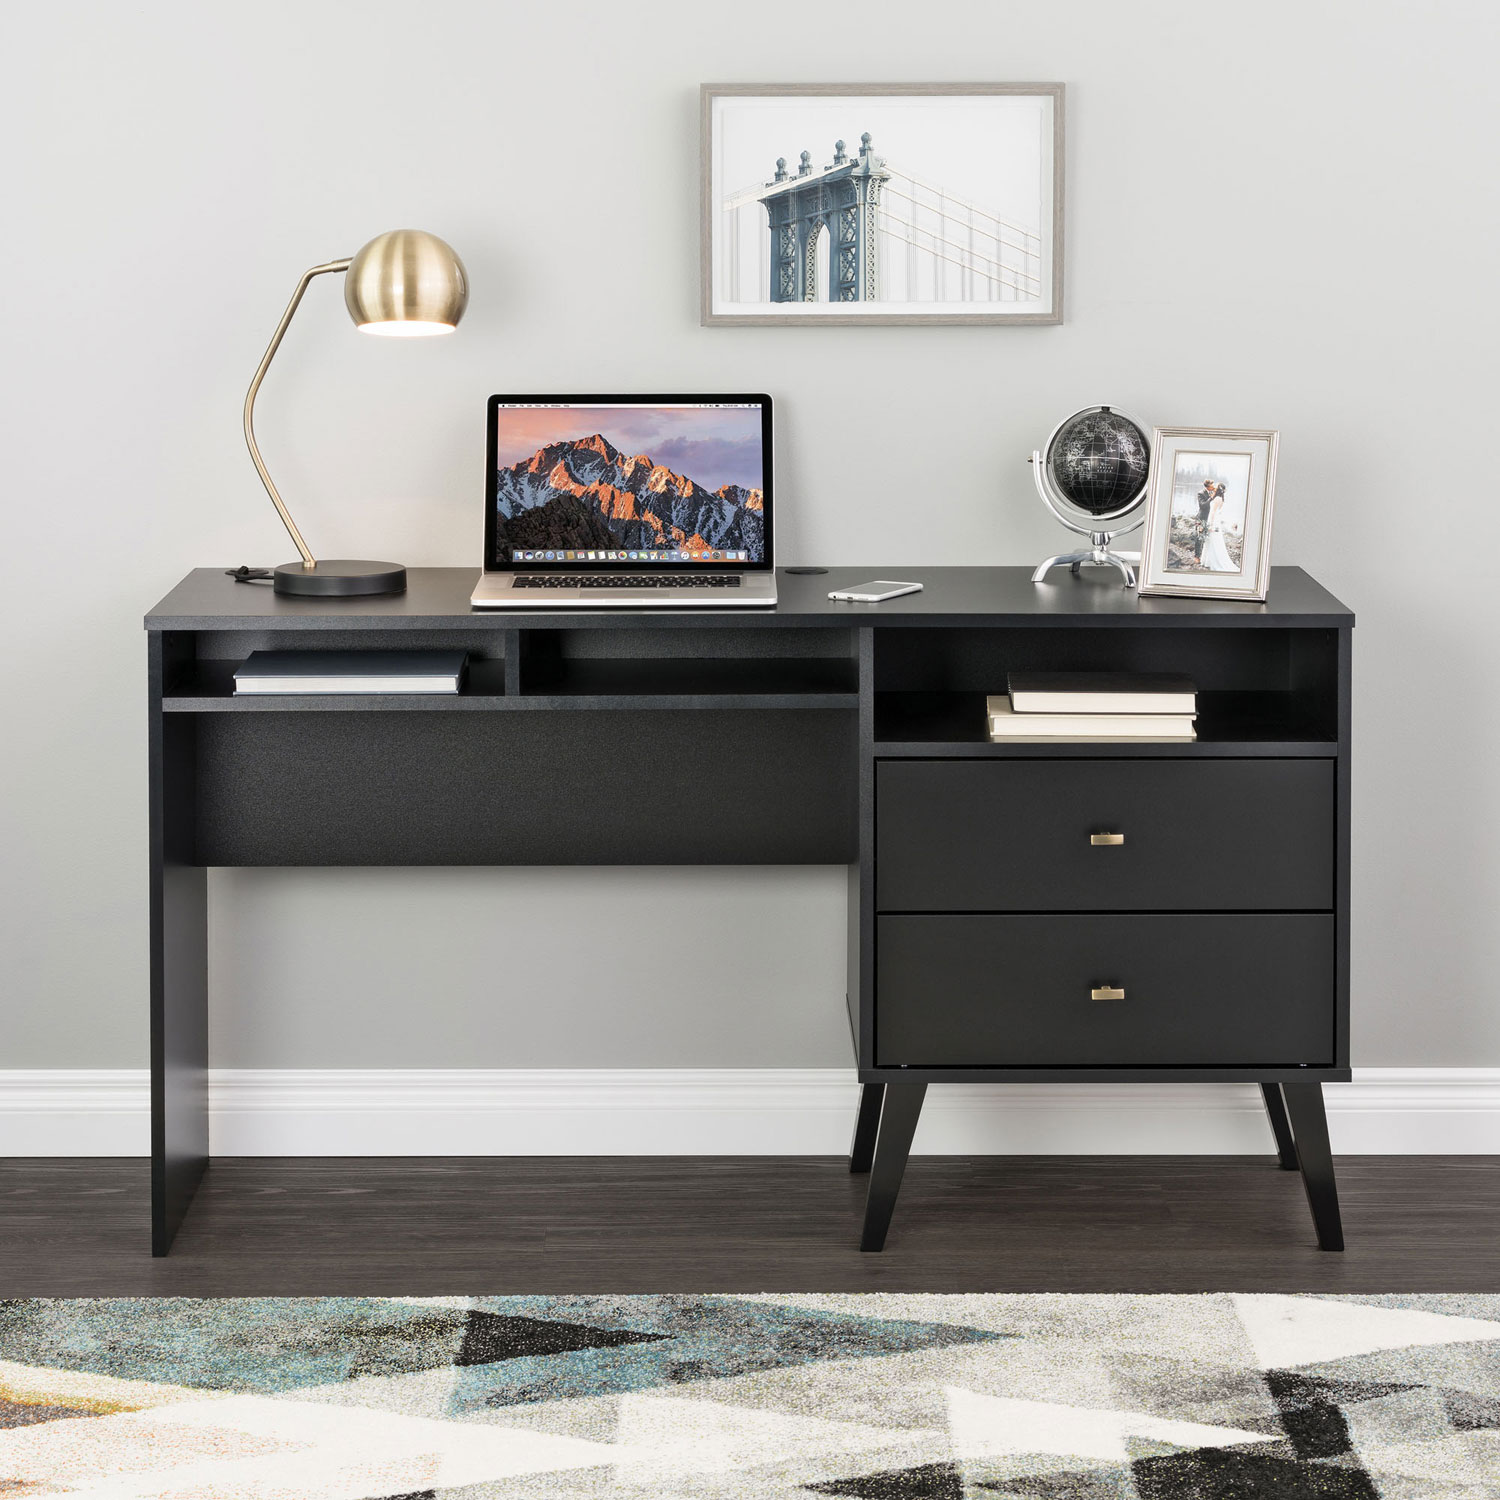 Milo Mid Century Modern Computer Desk With 3 Shelves 2 Drawers Black Best Buy Canada